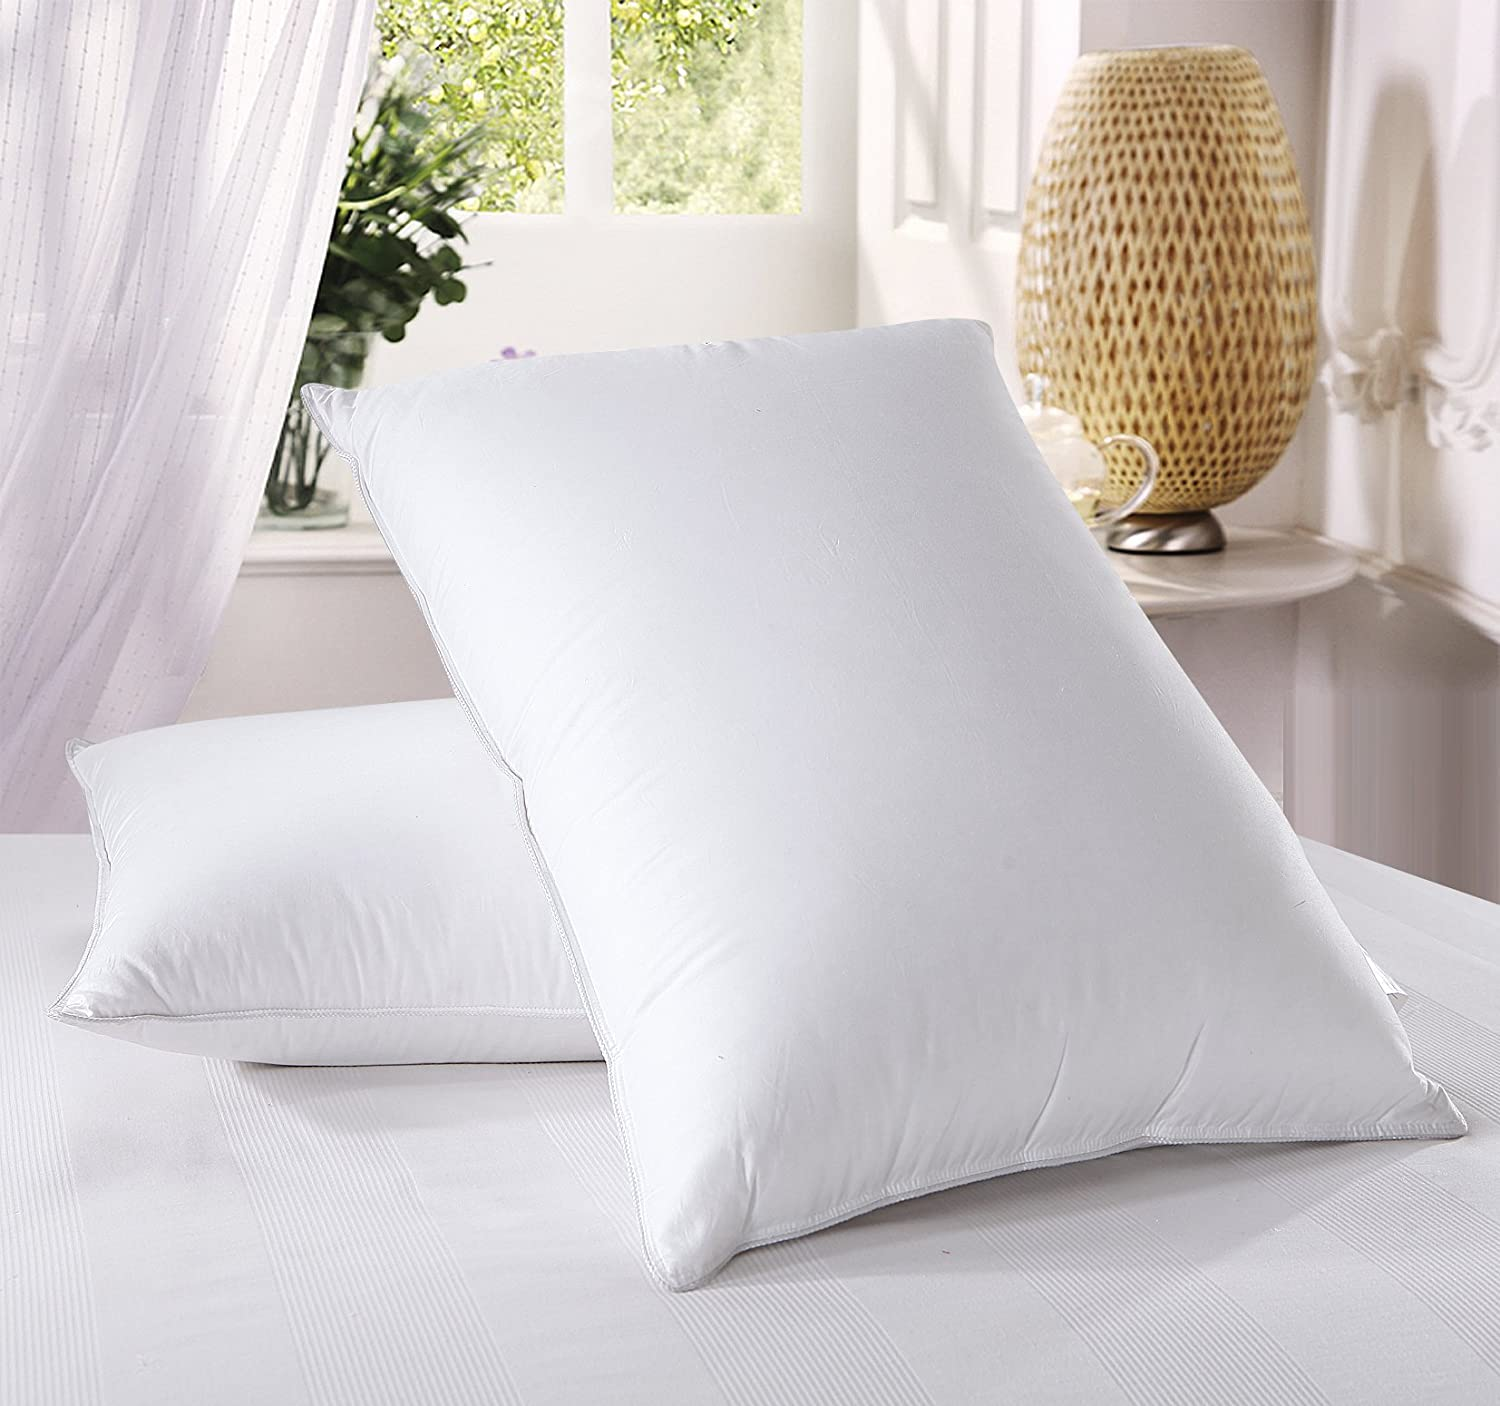 thickness of the pillow